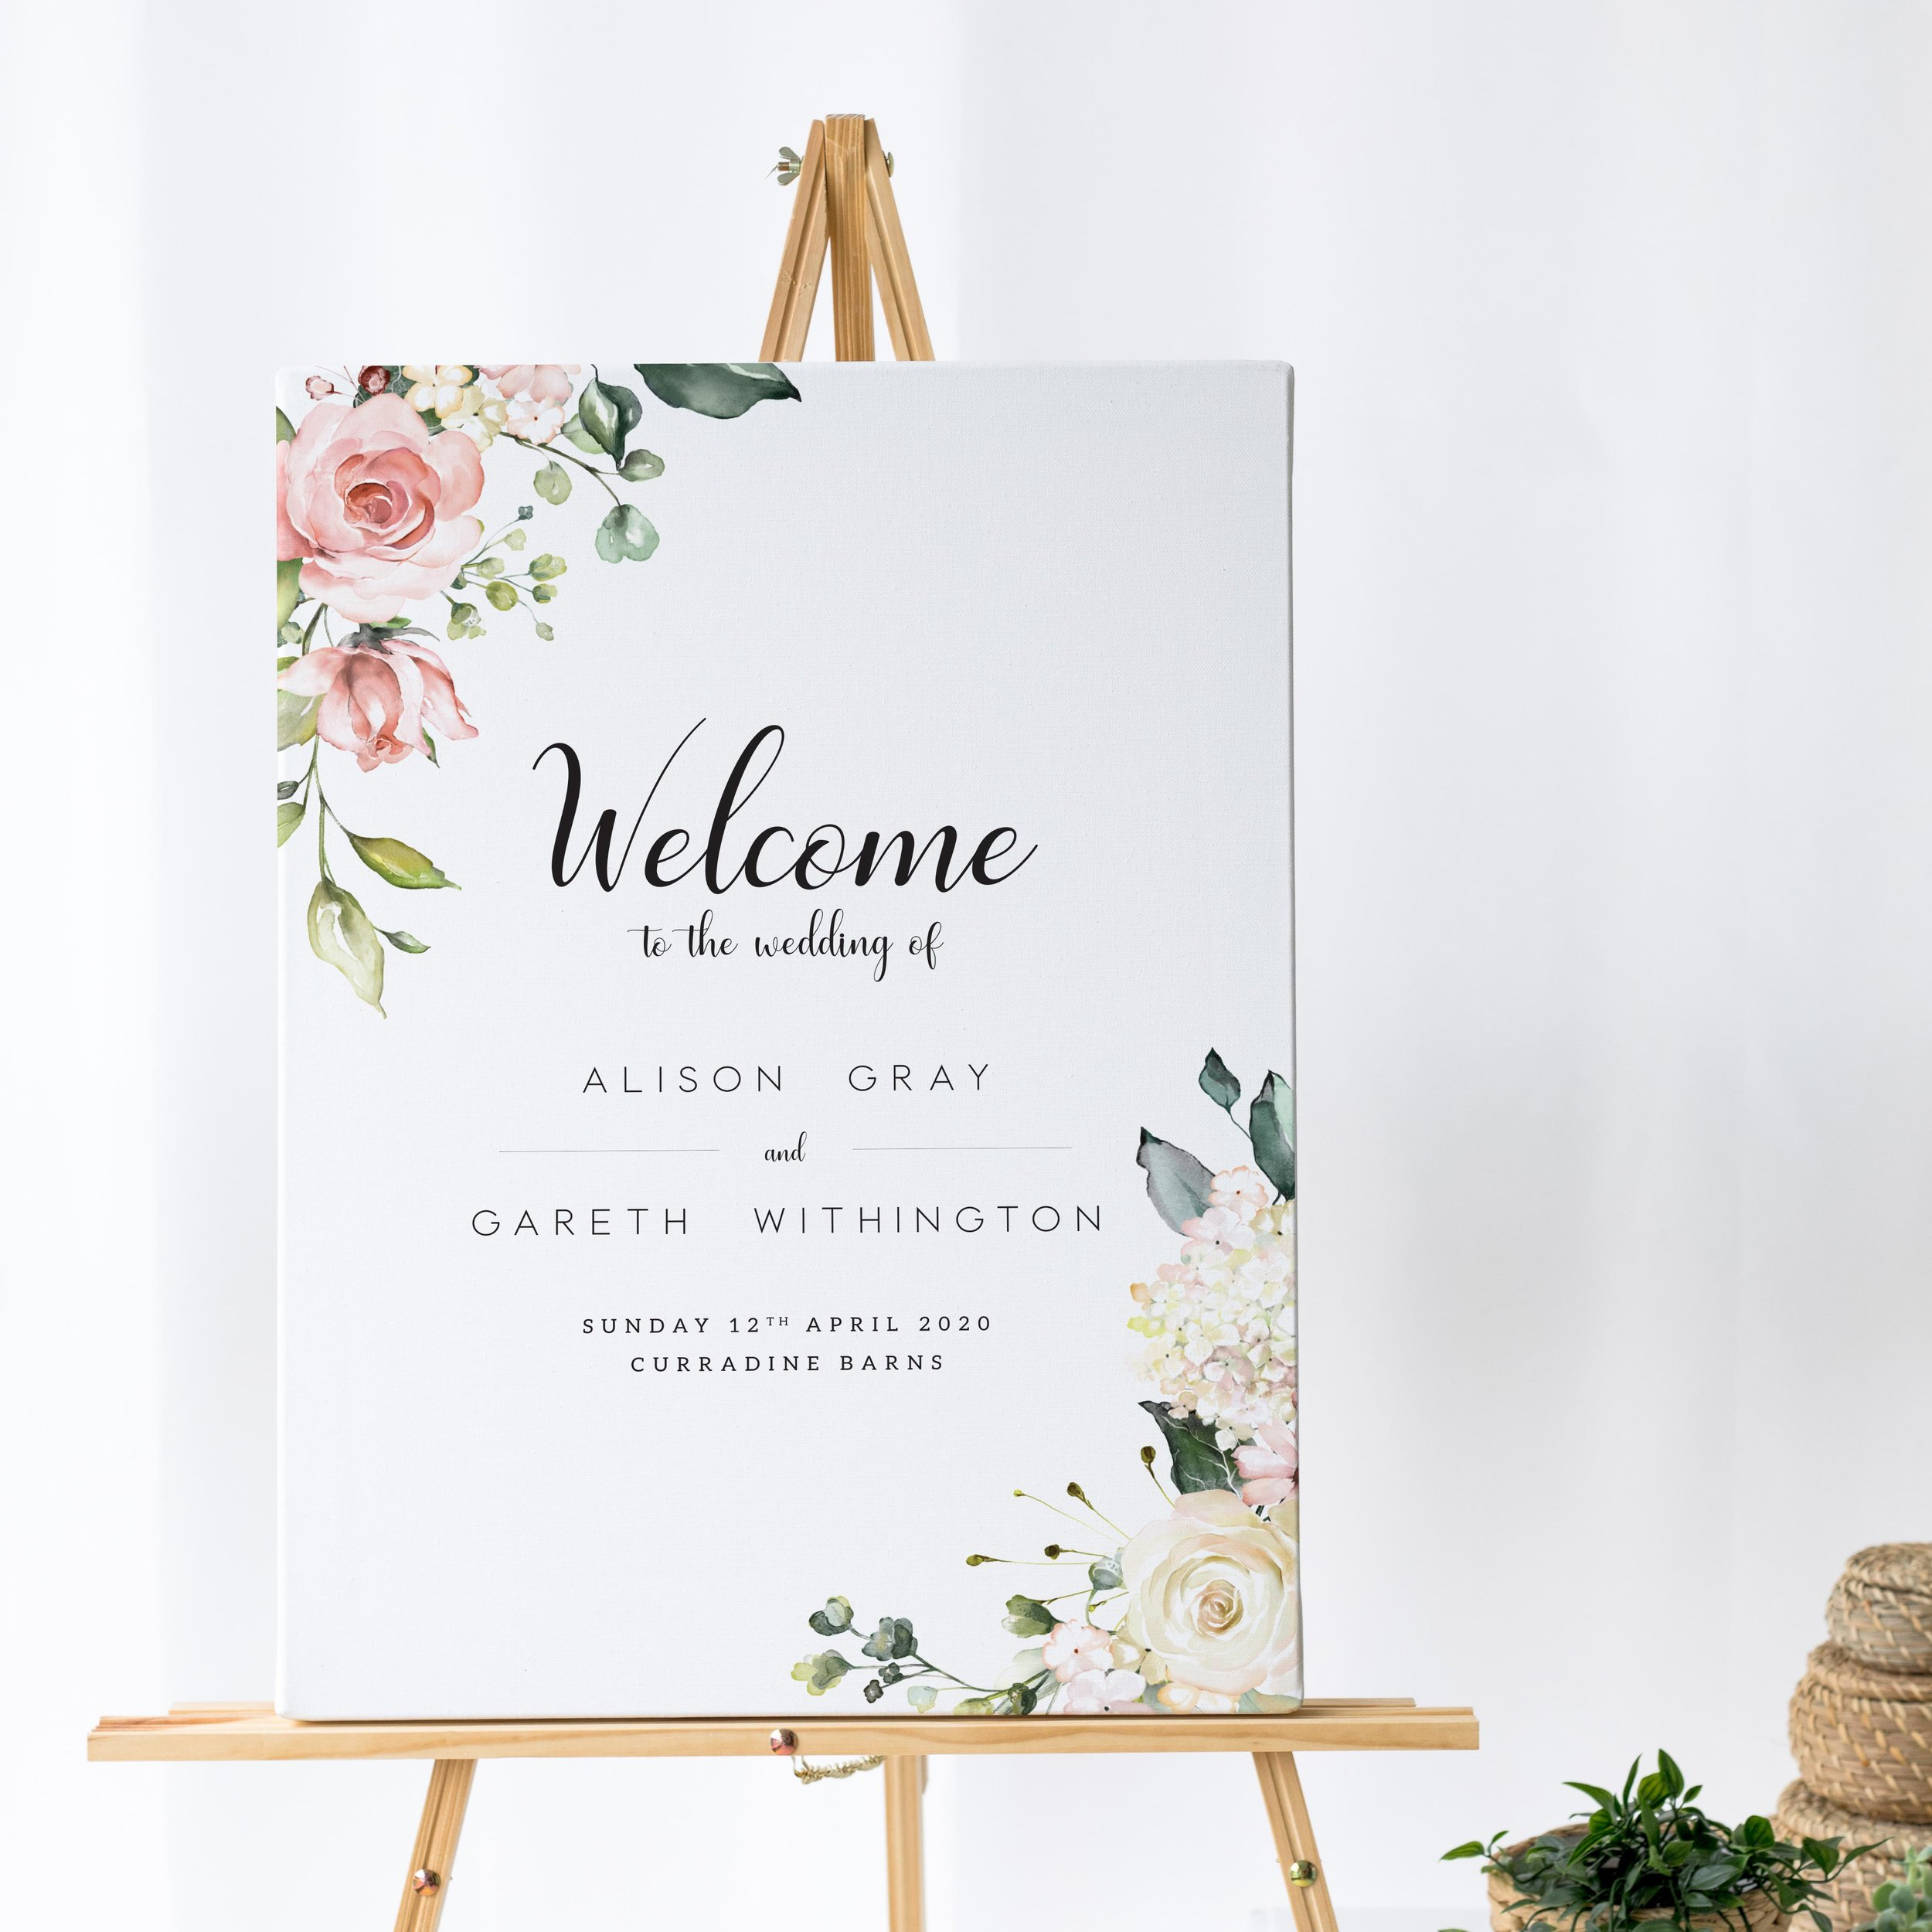 Signage Bundles - Whilst you can order a table plan by itself, you can order matching items to get a discount on your signage.Couples typically pair their table plan with a matching welcome sign to greet guests as they arrive but you can also add an order of the day timeline for a further discount.To qualify, all items must be the same size, finish and orientation.